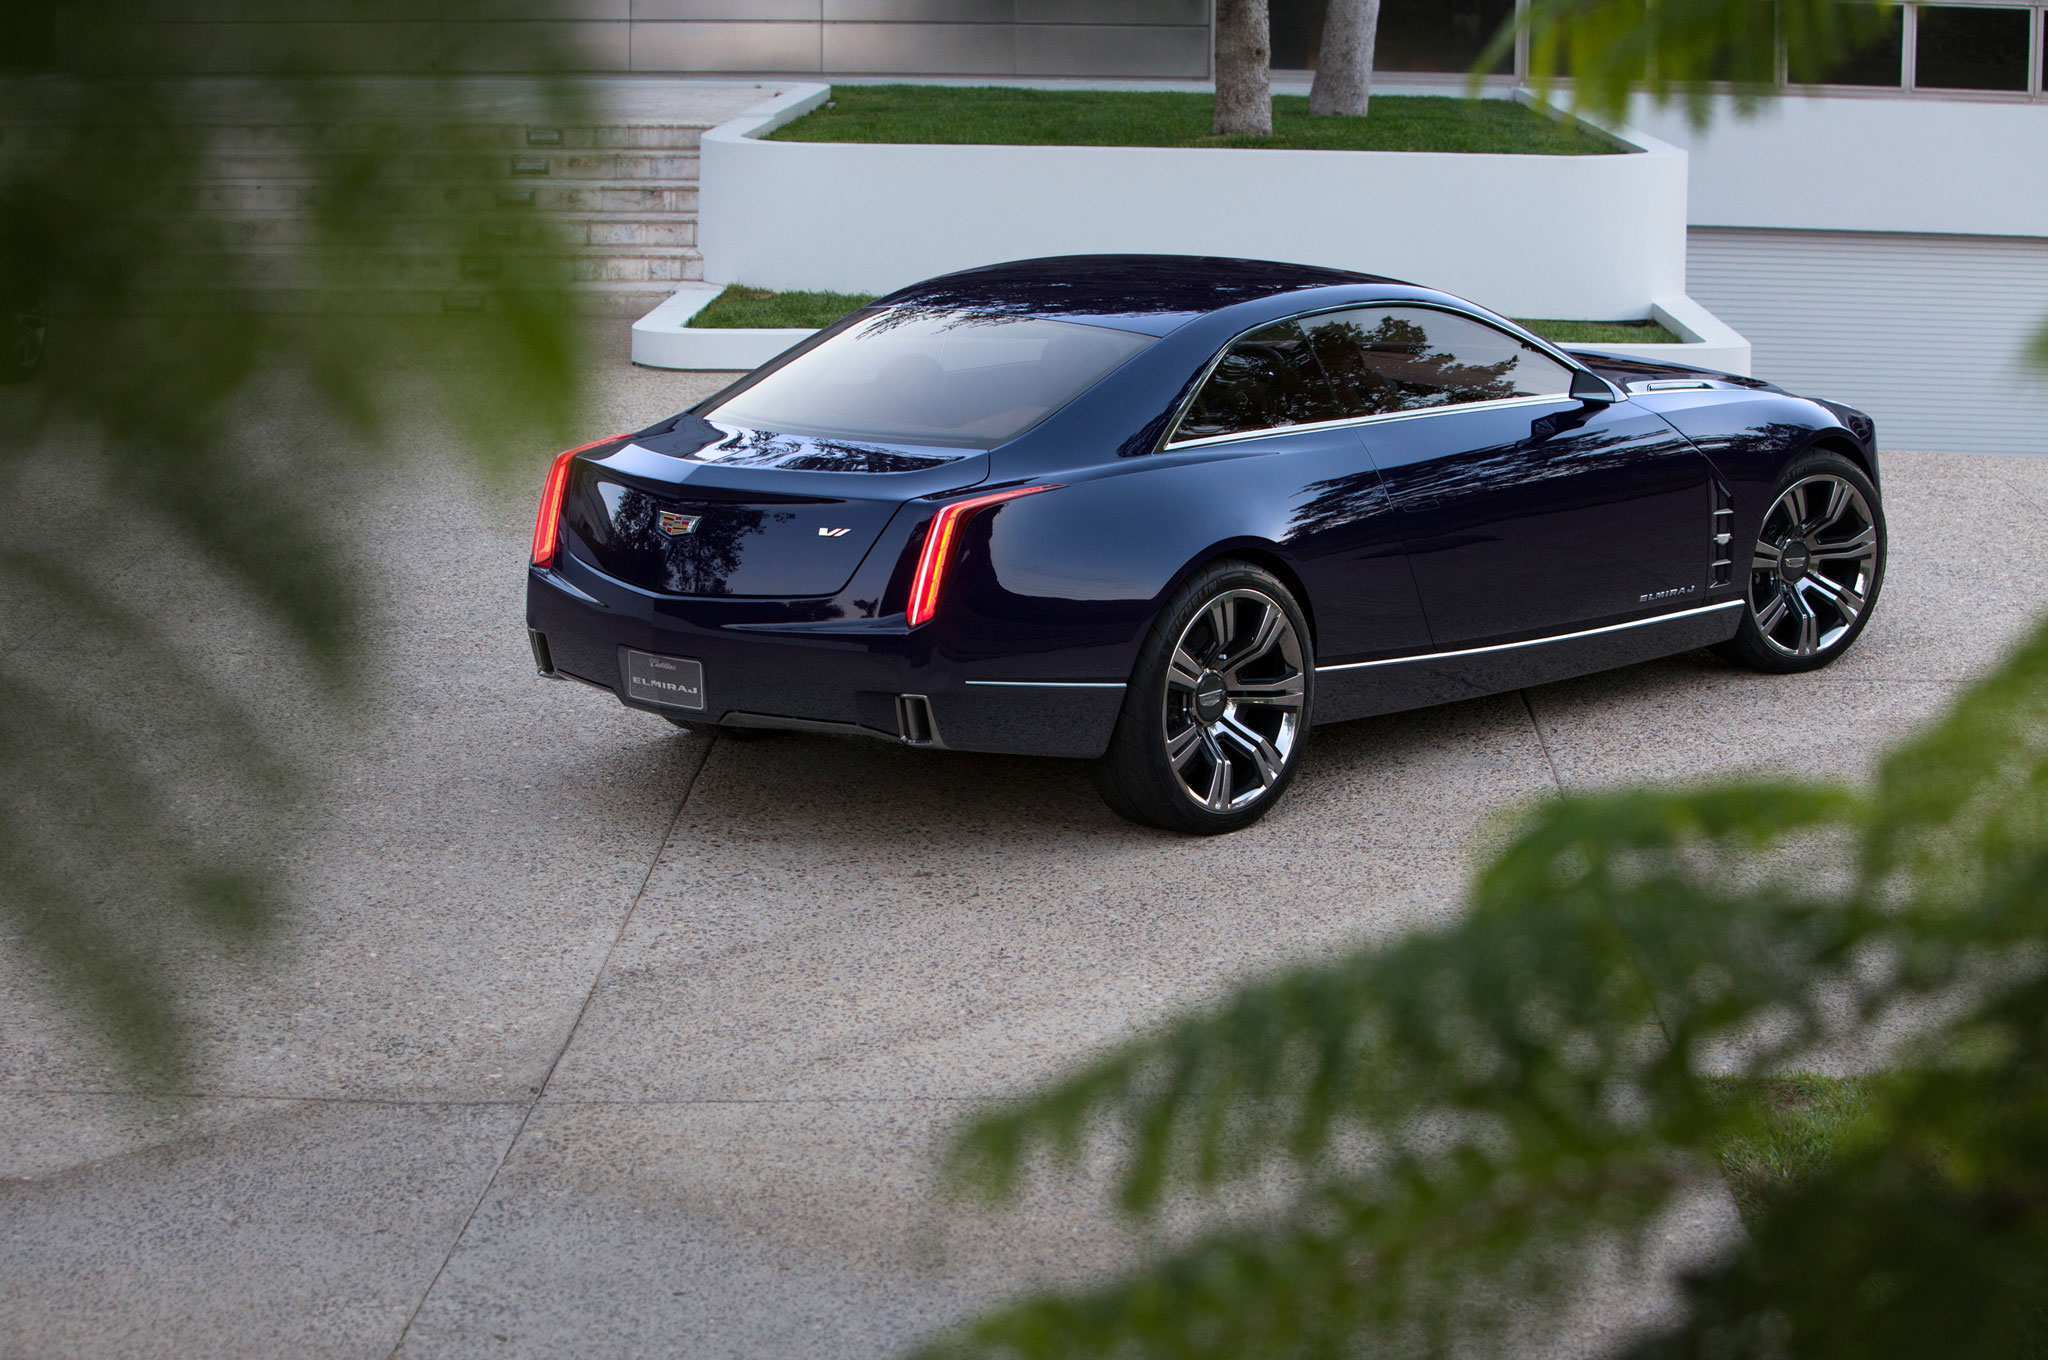 79 Gallery of 2020 Cadillac ELR Specs with 2020 Cadillac ELR